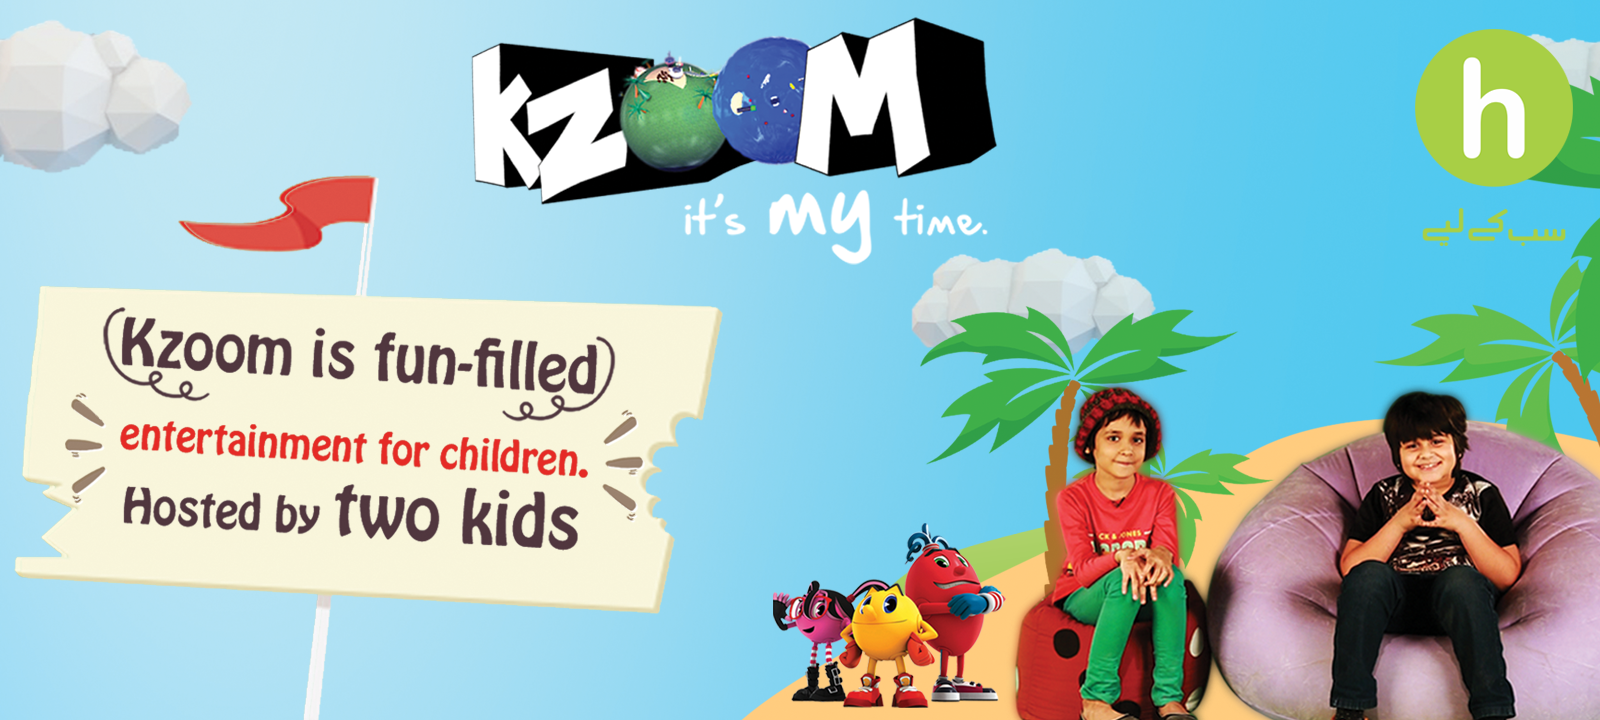 Kzoom